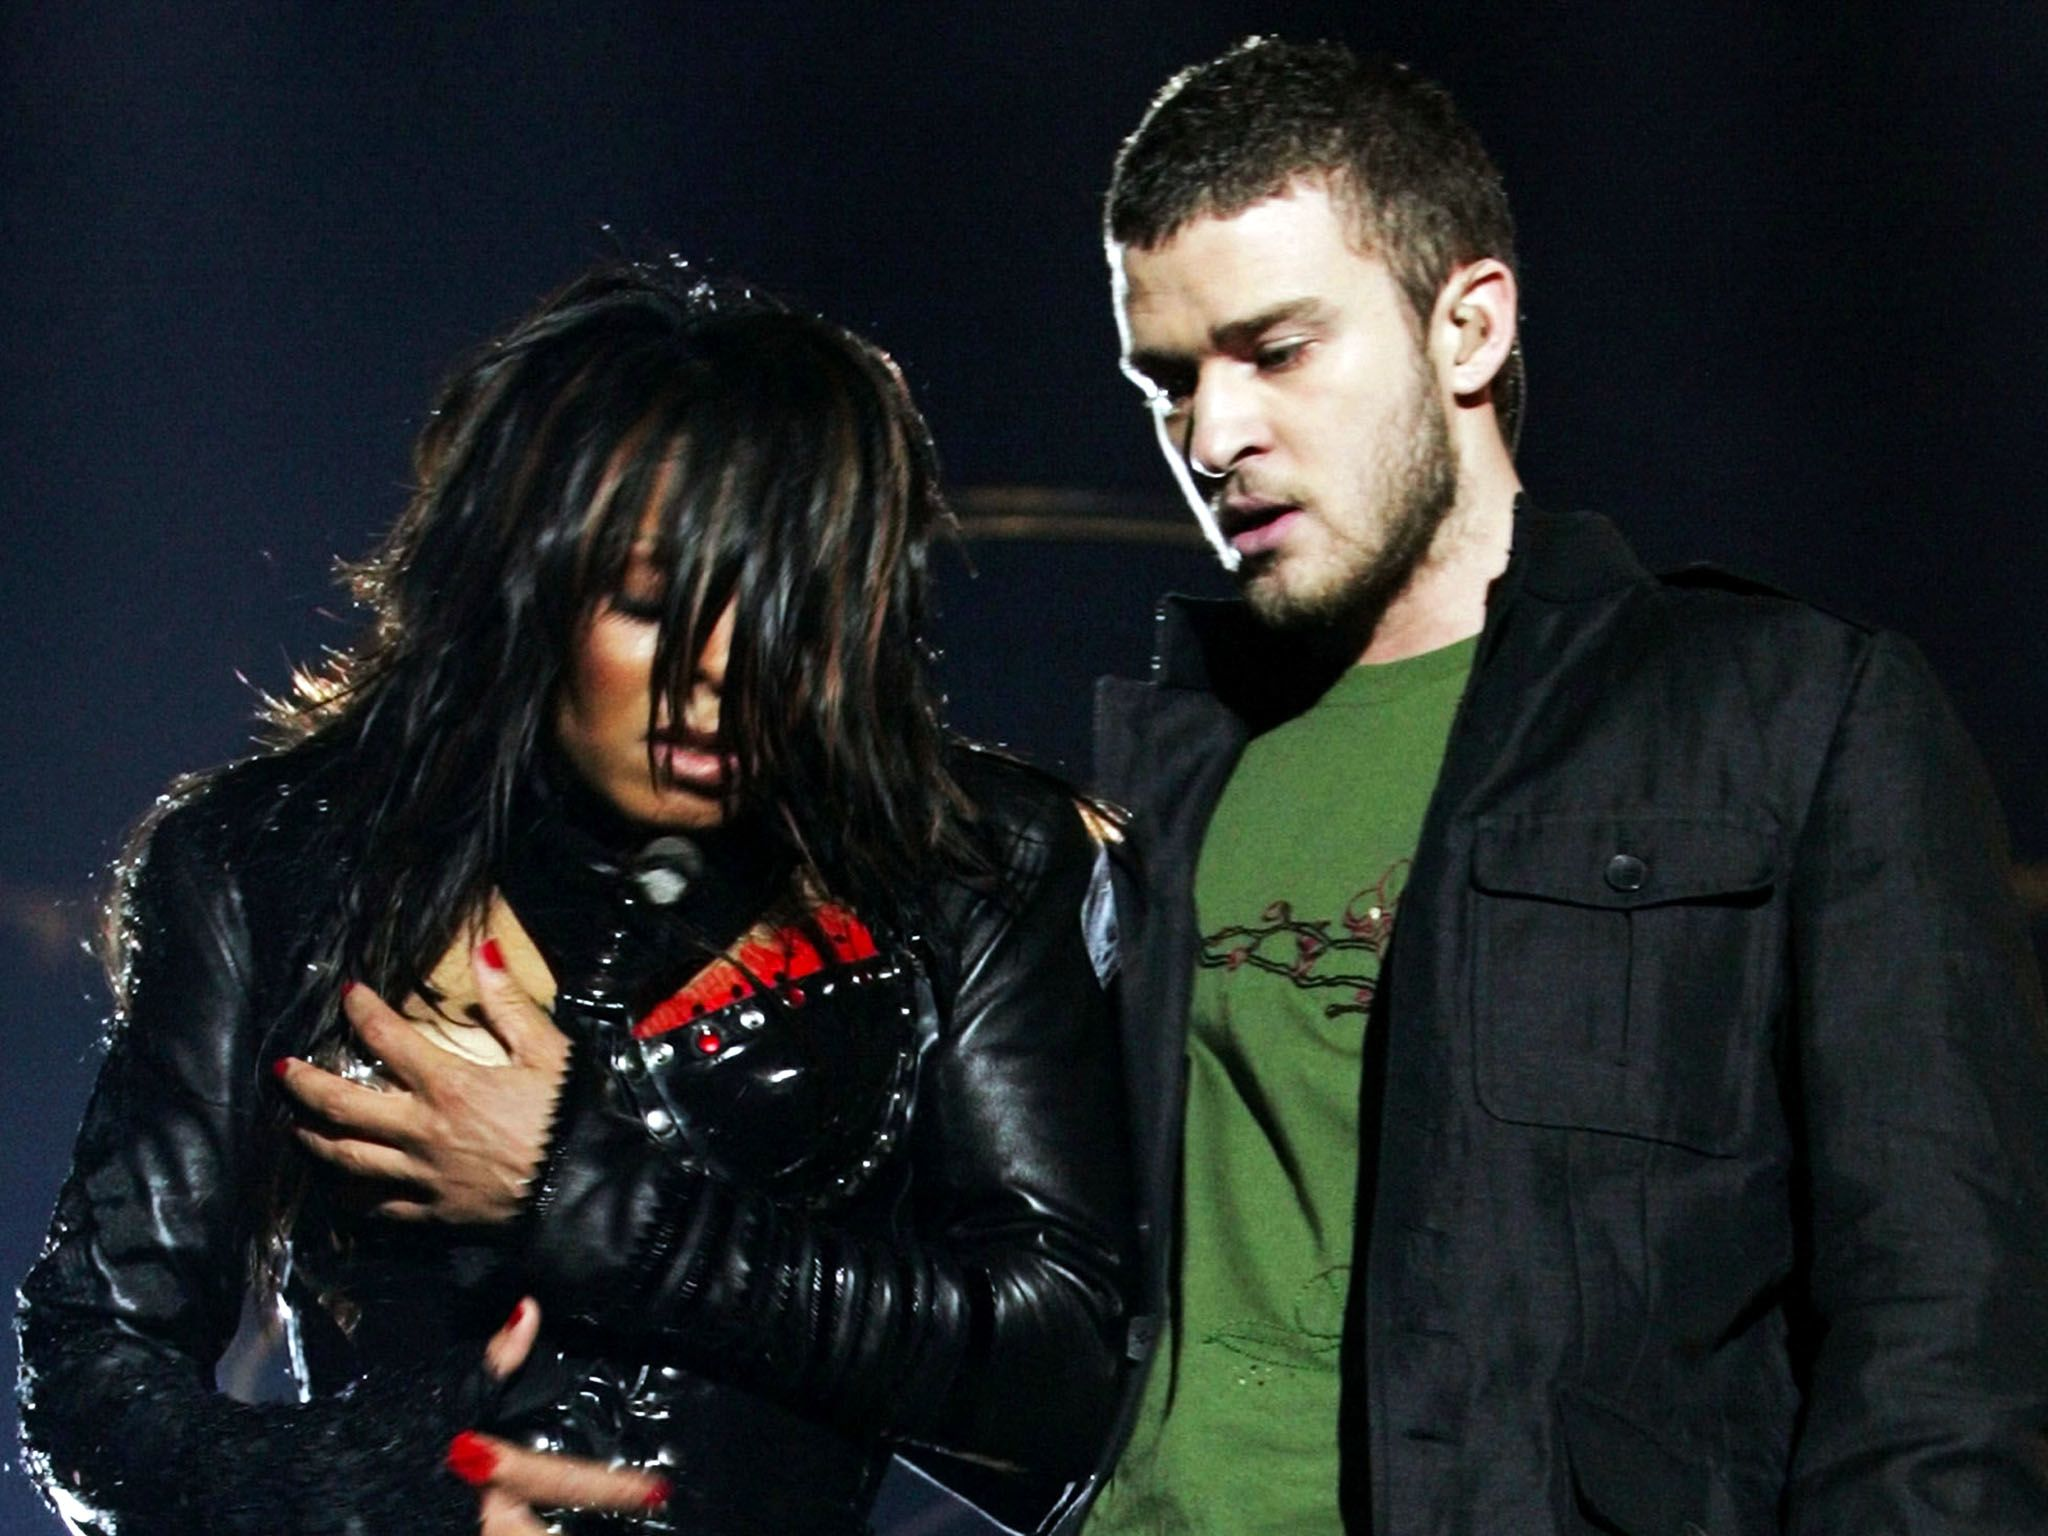 Houston, Texas - Janet Jackson (L) reacts after fellow singer Justin Timberlake ripped off one of... [Фото дня - Август 2015]